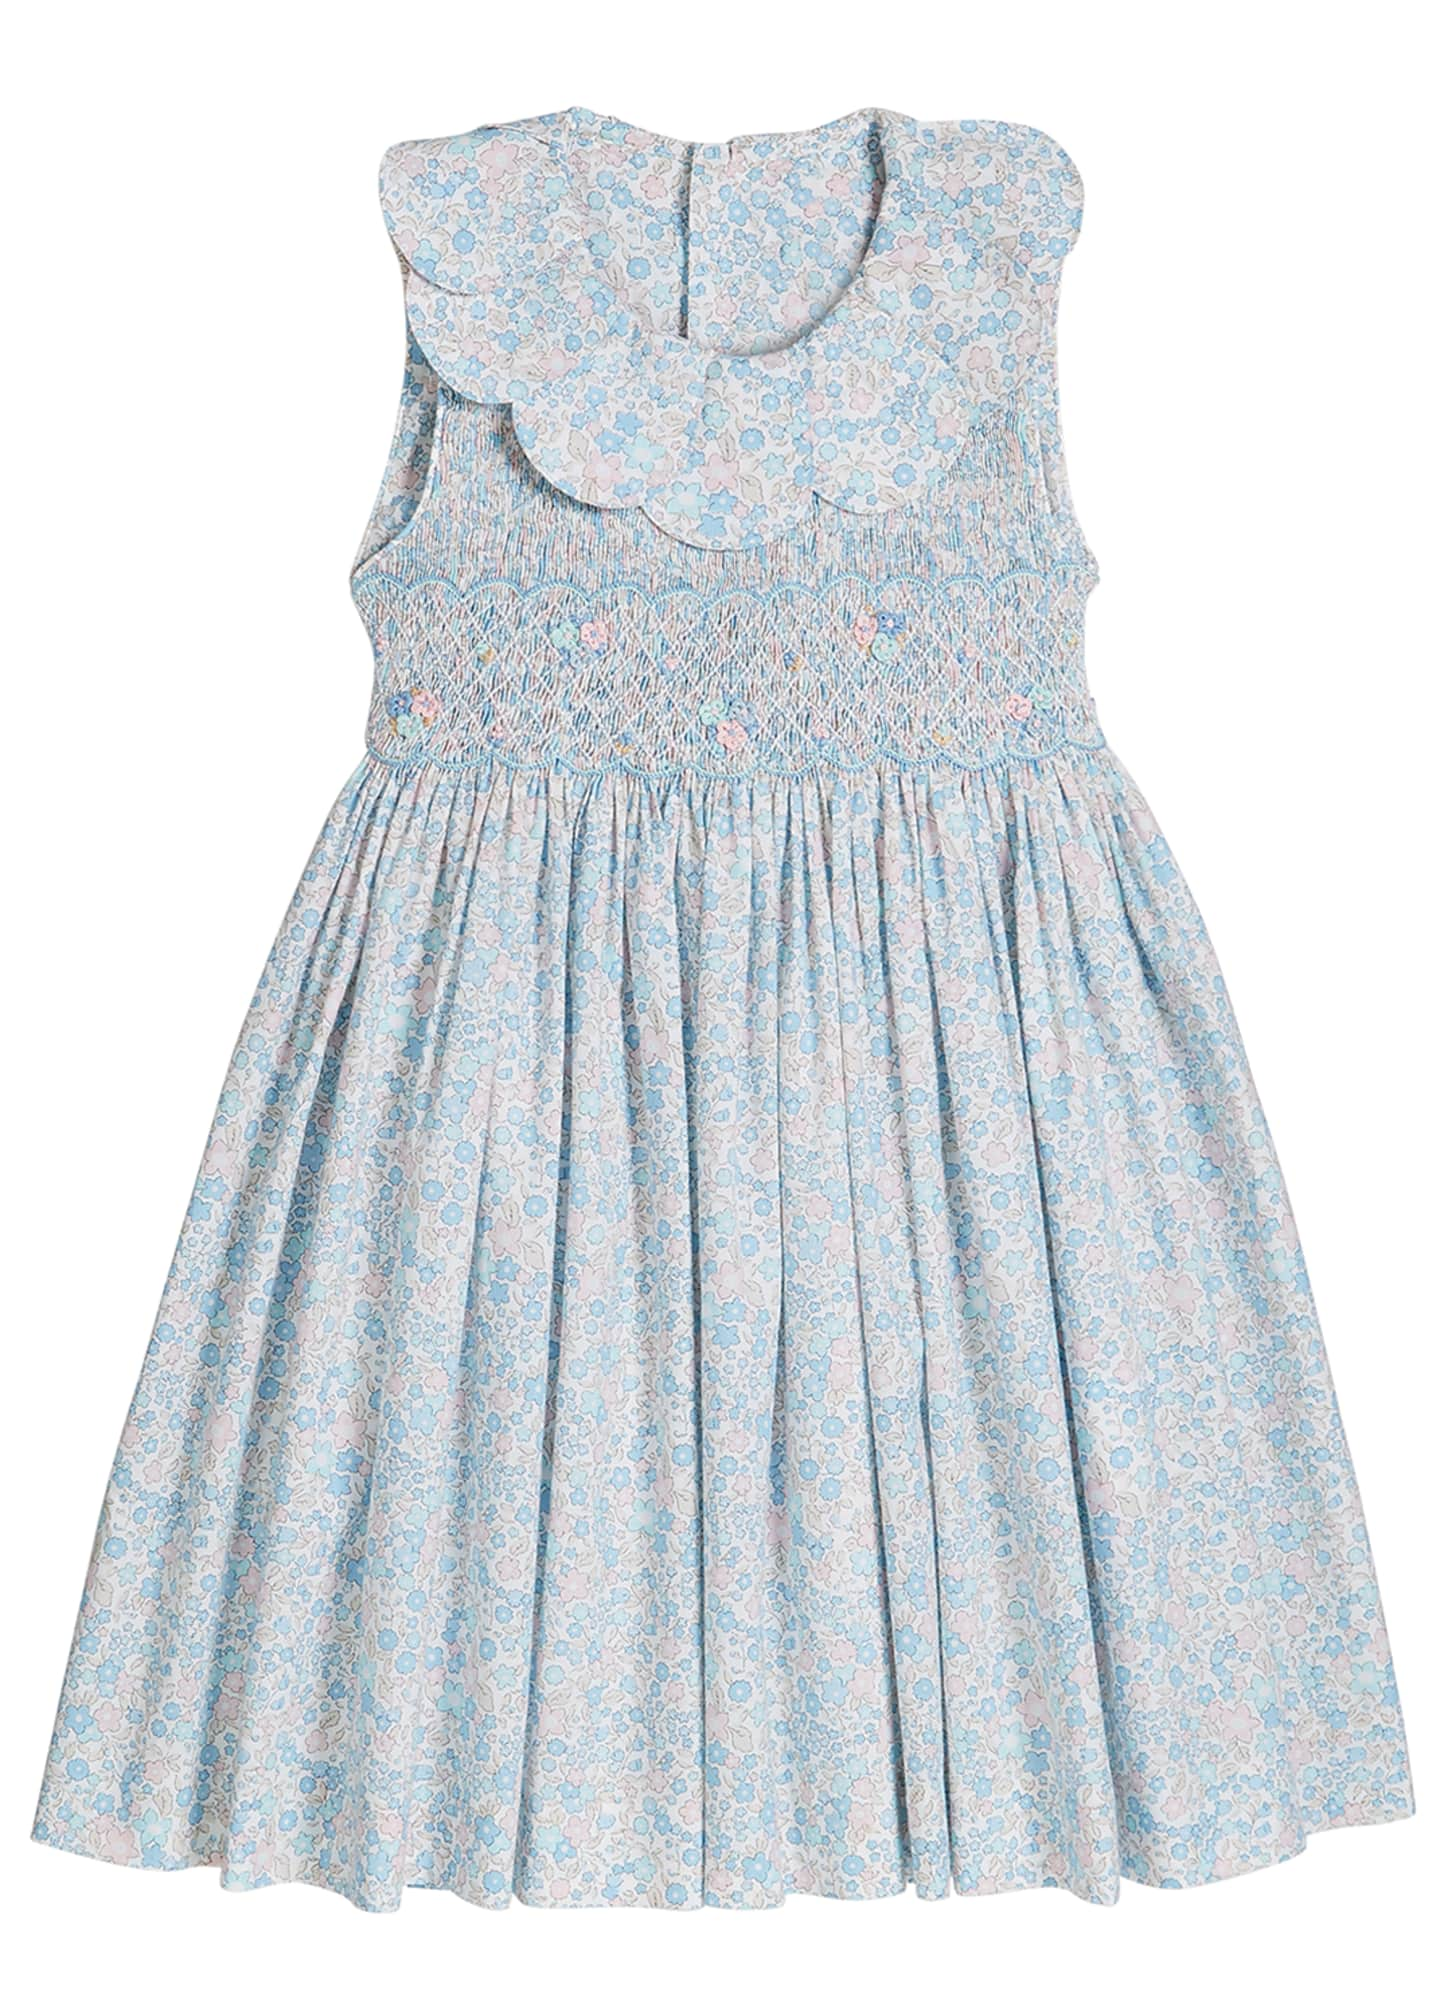 Image 1 of 2: Girl's Floral Print Petal Collar Smocked Dress, Size 4-6X